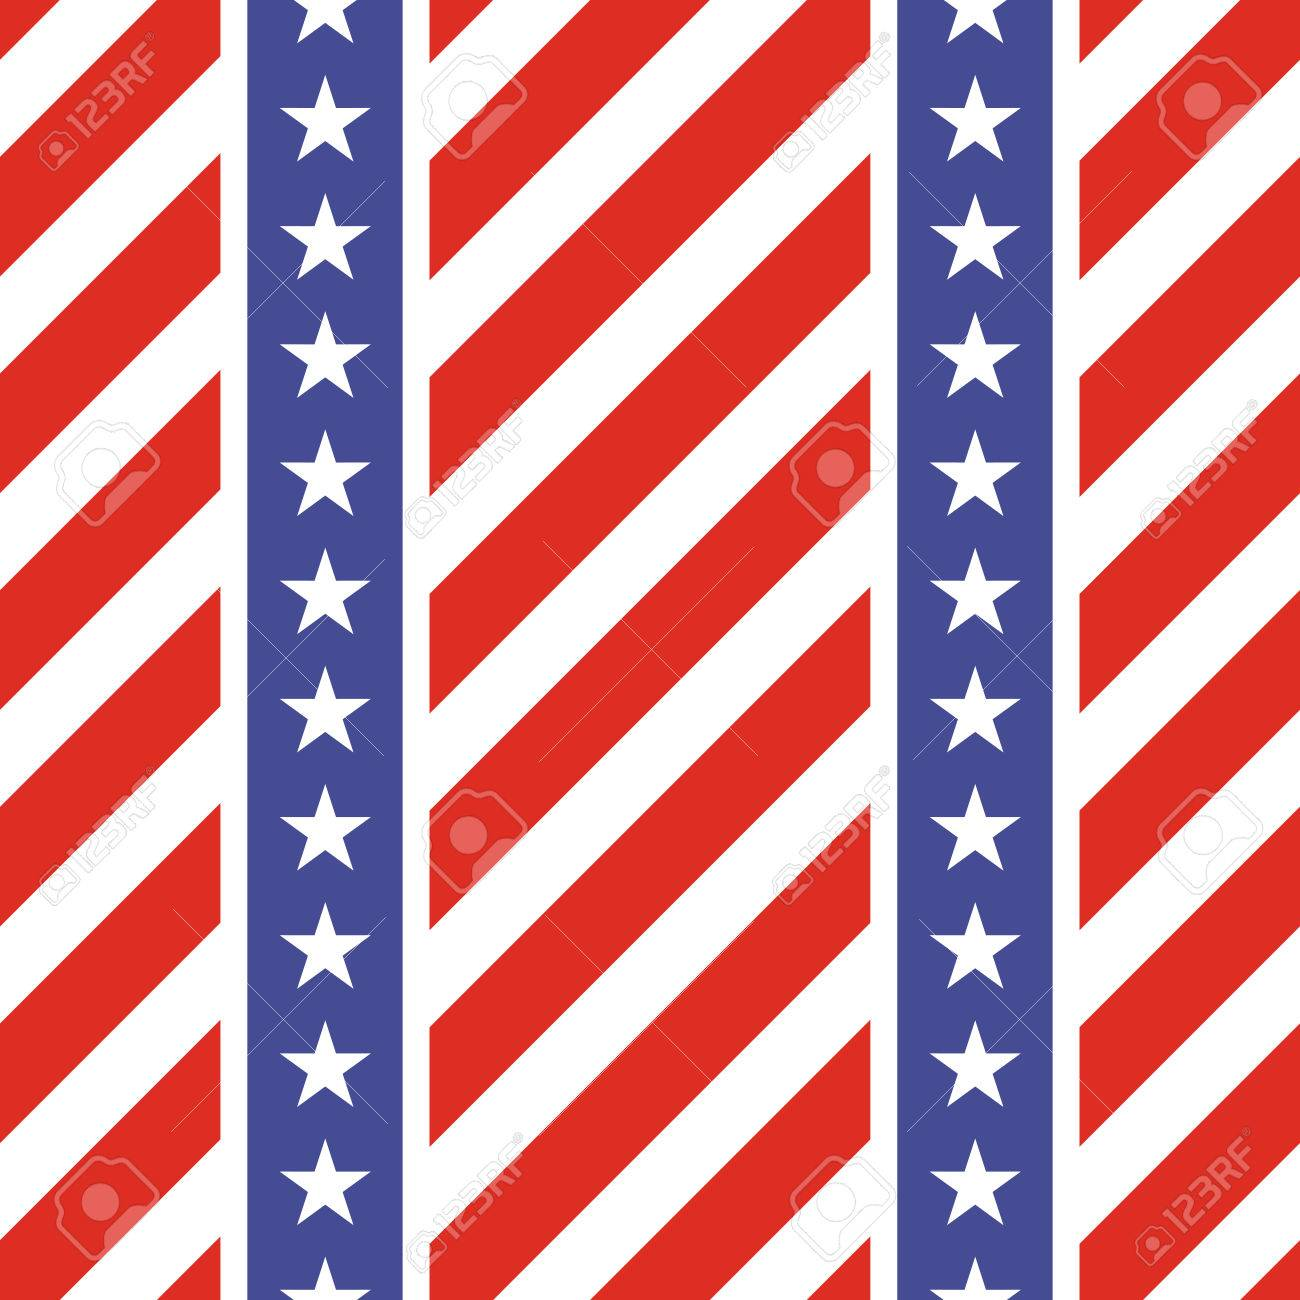 Patriotic Usa Seamless Pattern American Flag Symbols And Colors